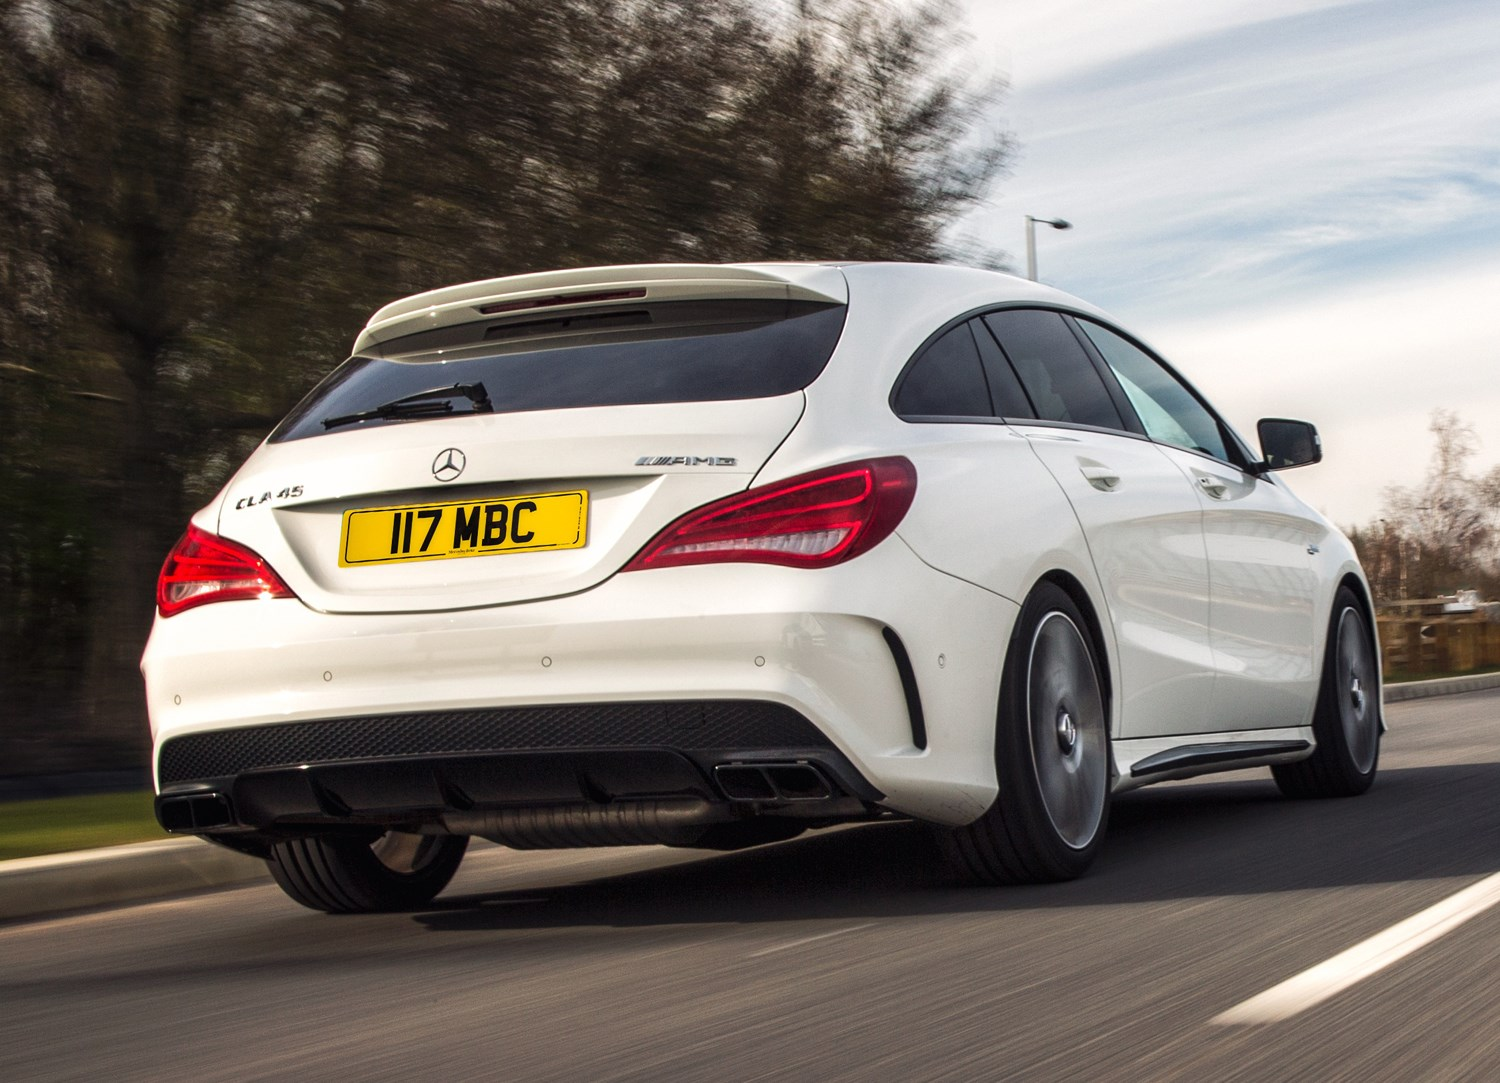 Mercedes benz cla class amg 2013 2016 features for Mercedes benz amg accessories